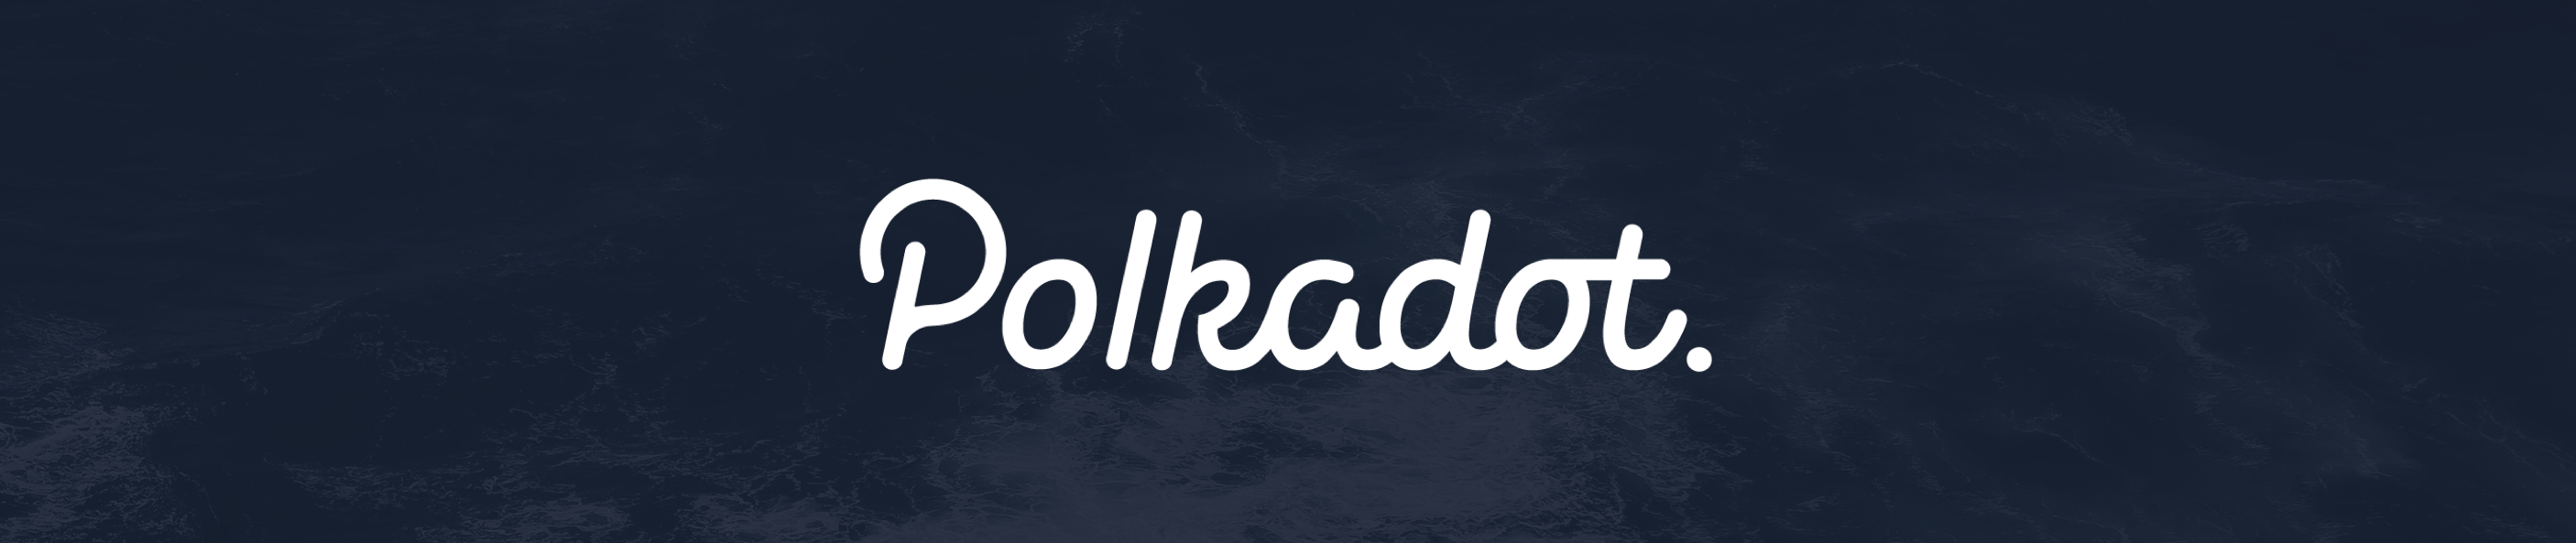 Polkadot empowers blockchain networks to work together under the protection of shared security.